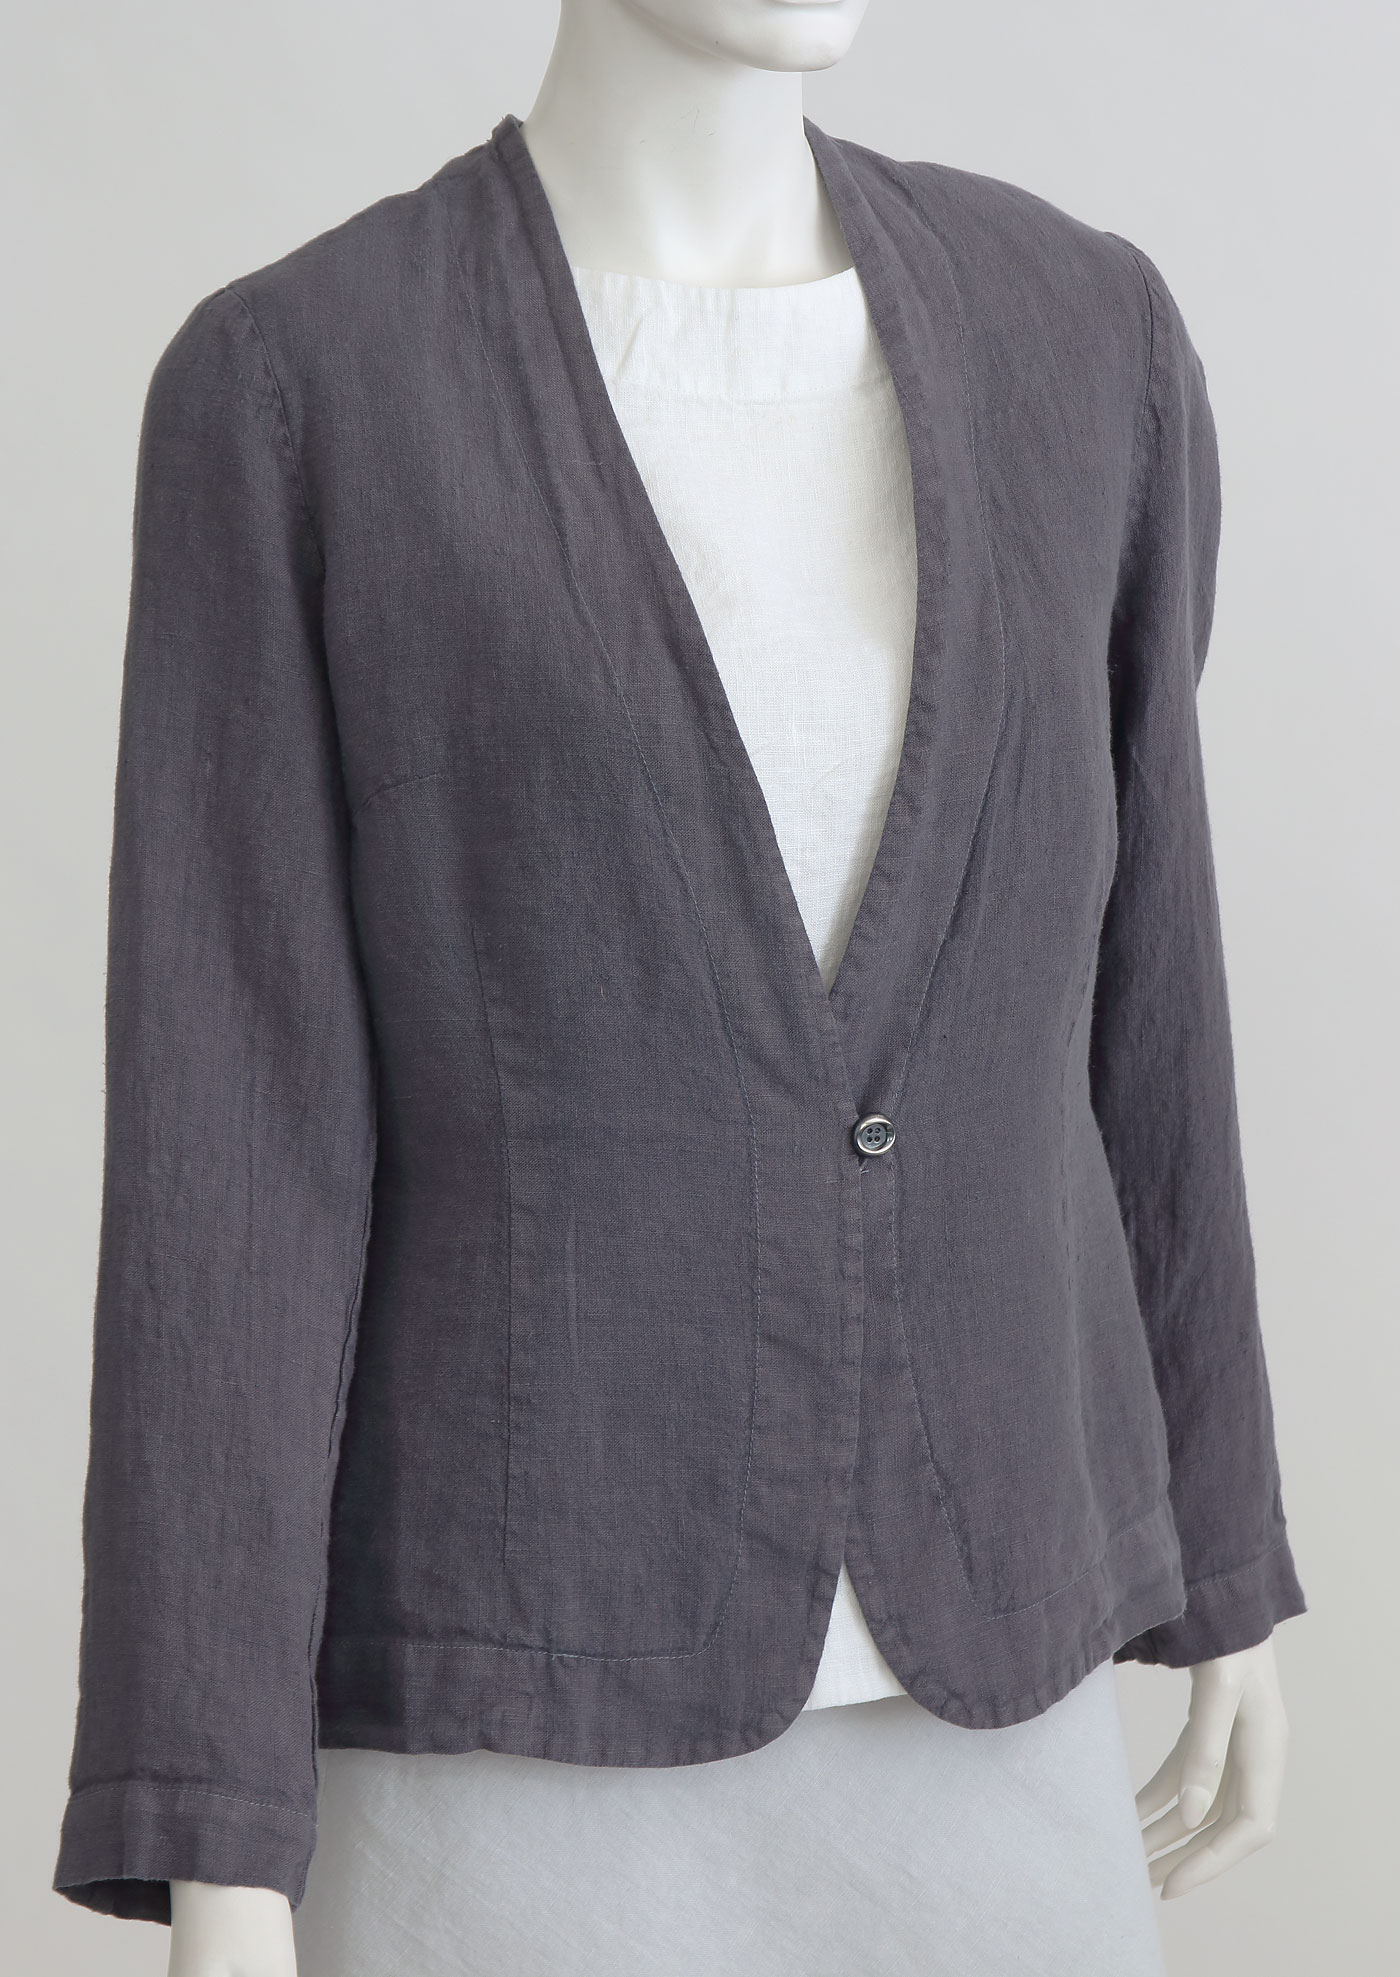 Ladies Suit Jacket D53130 Se2 Hd E Hdeu